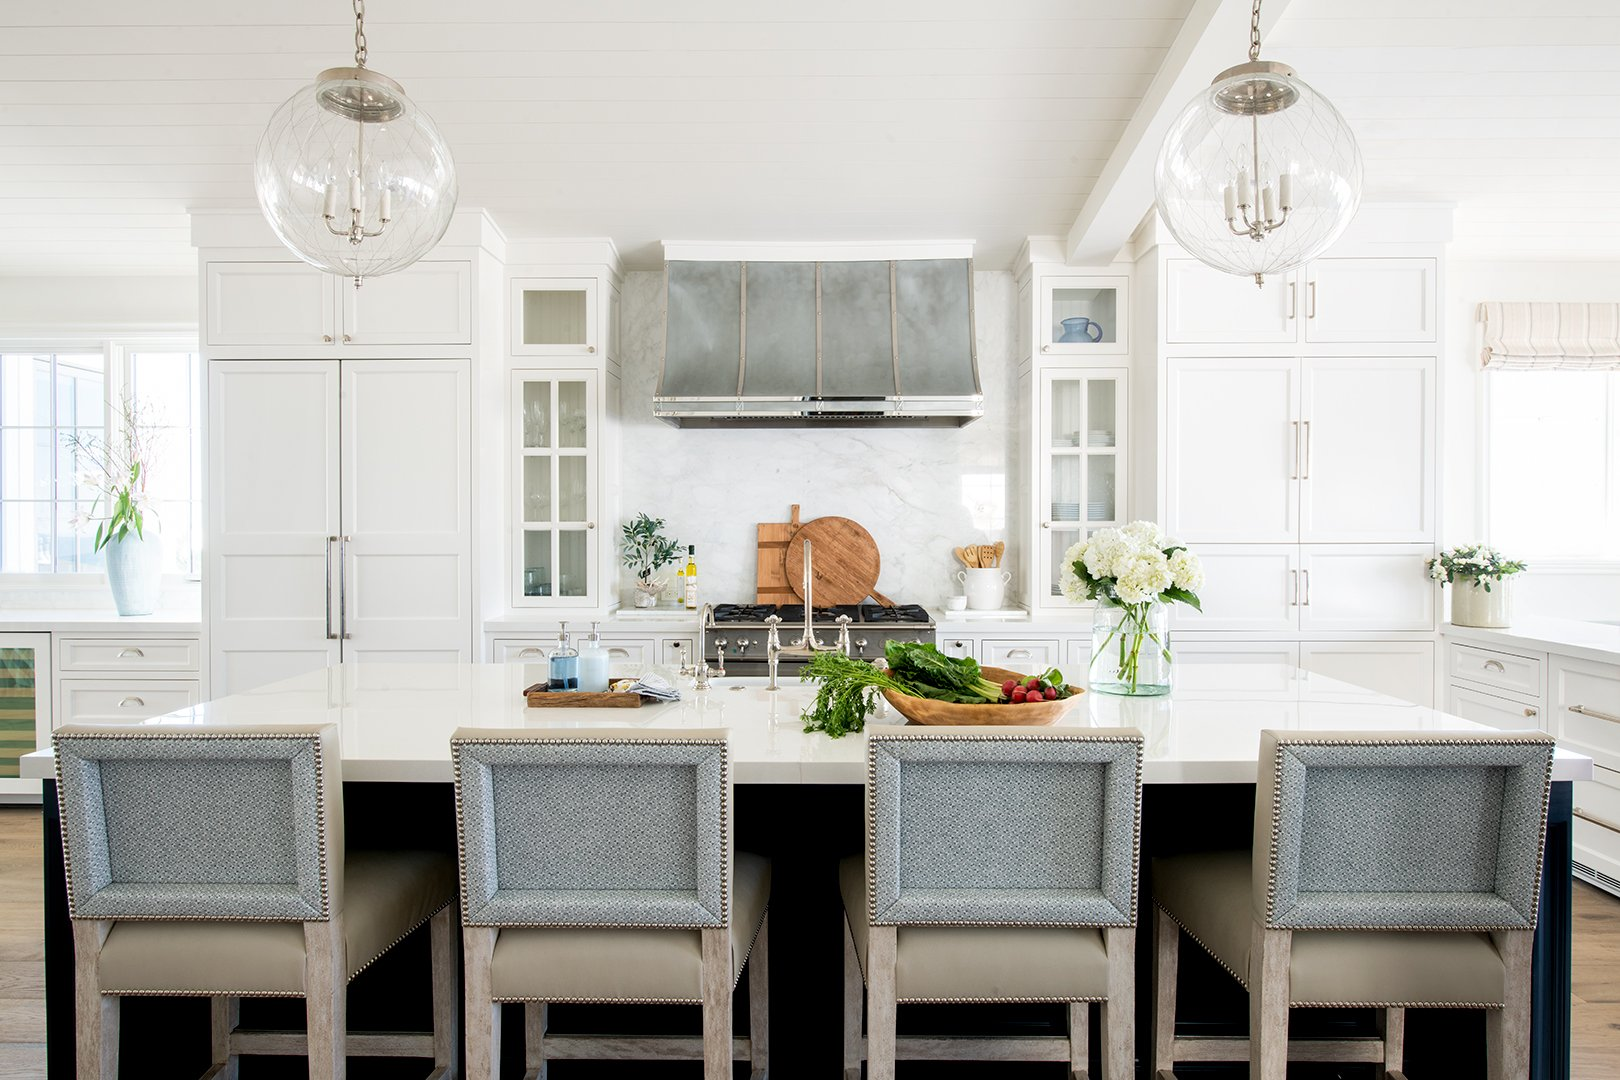 Kid friendly kitchen with marble-lookalike porcelain counter tops and faux leather chairs at the eat-in island